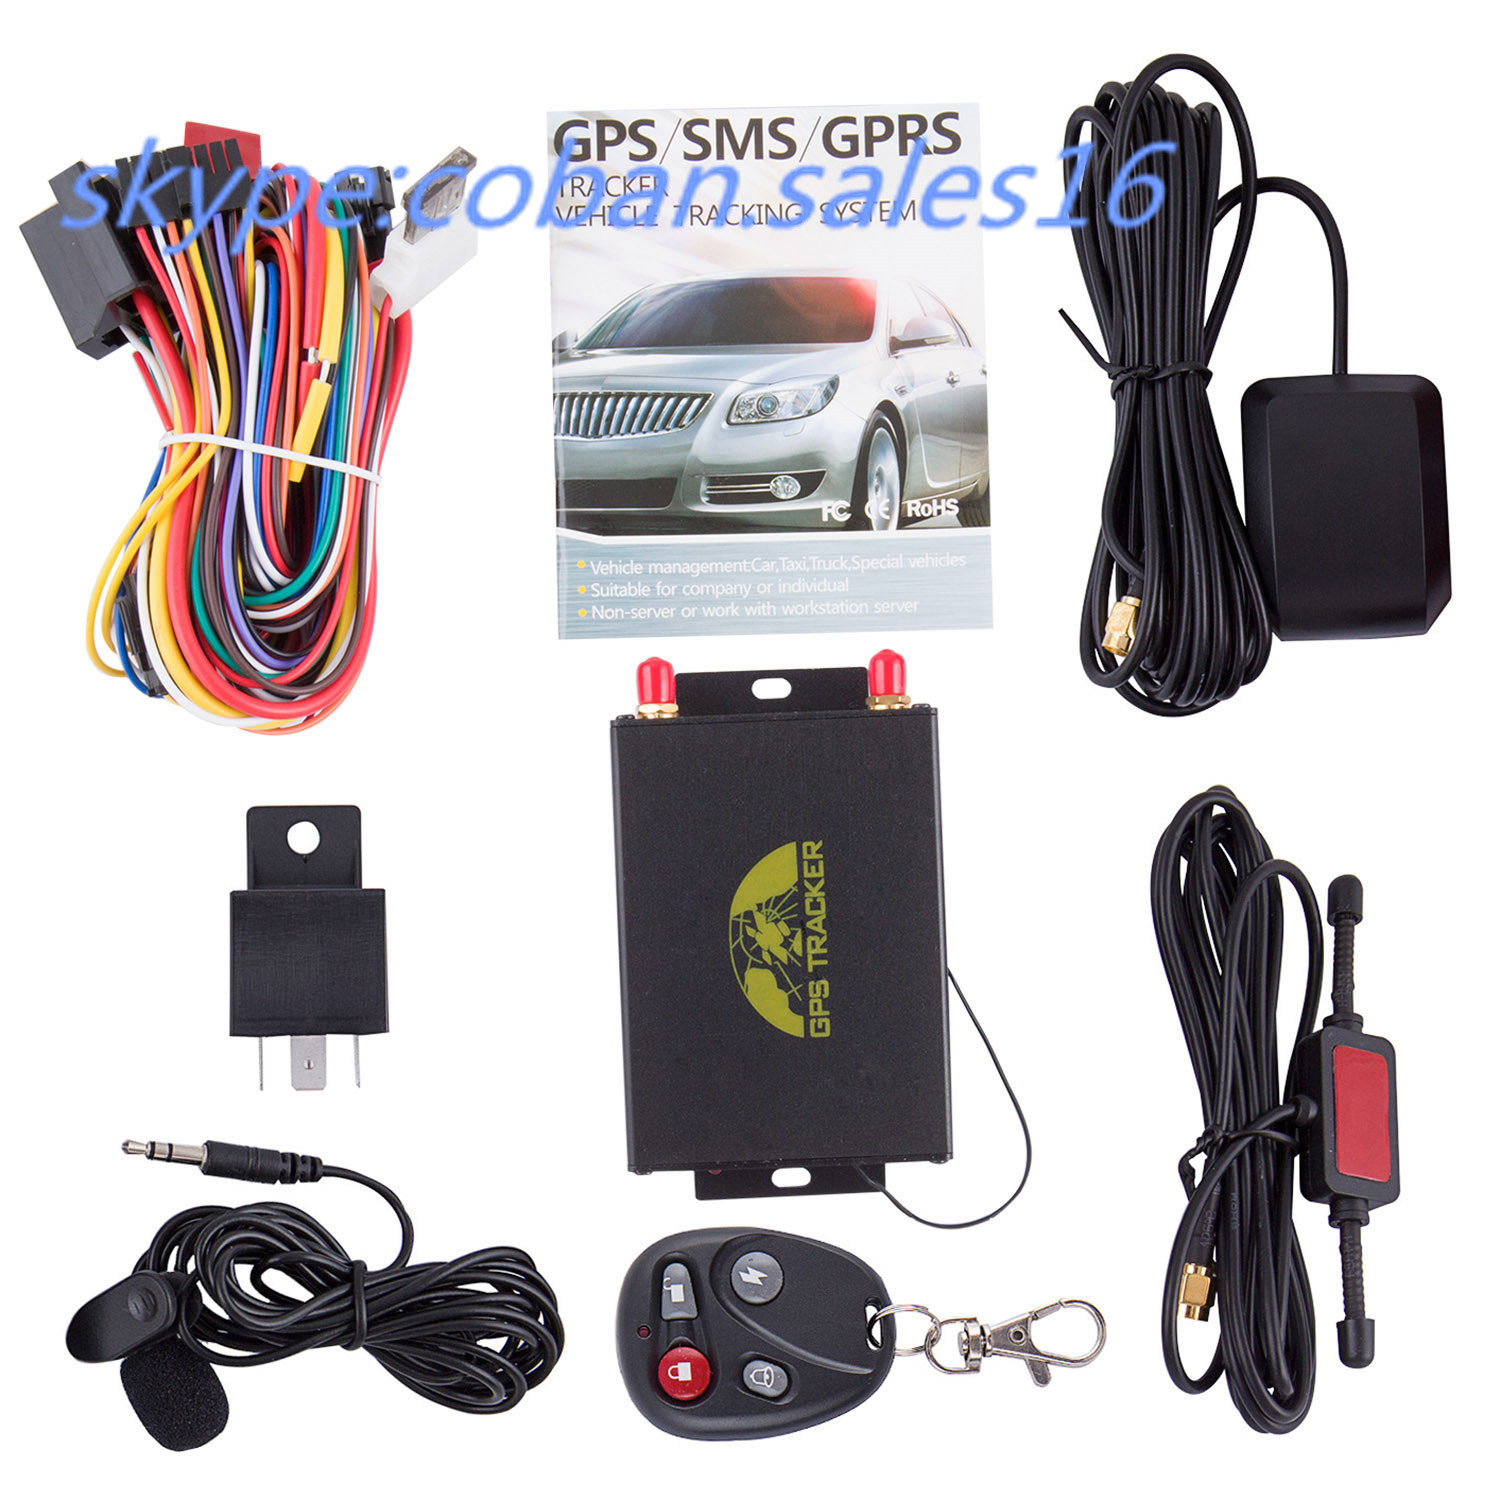 Manual GPS Tracker Tk105 with Camera, Mileage Report GPS Tracking Device